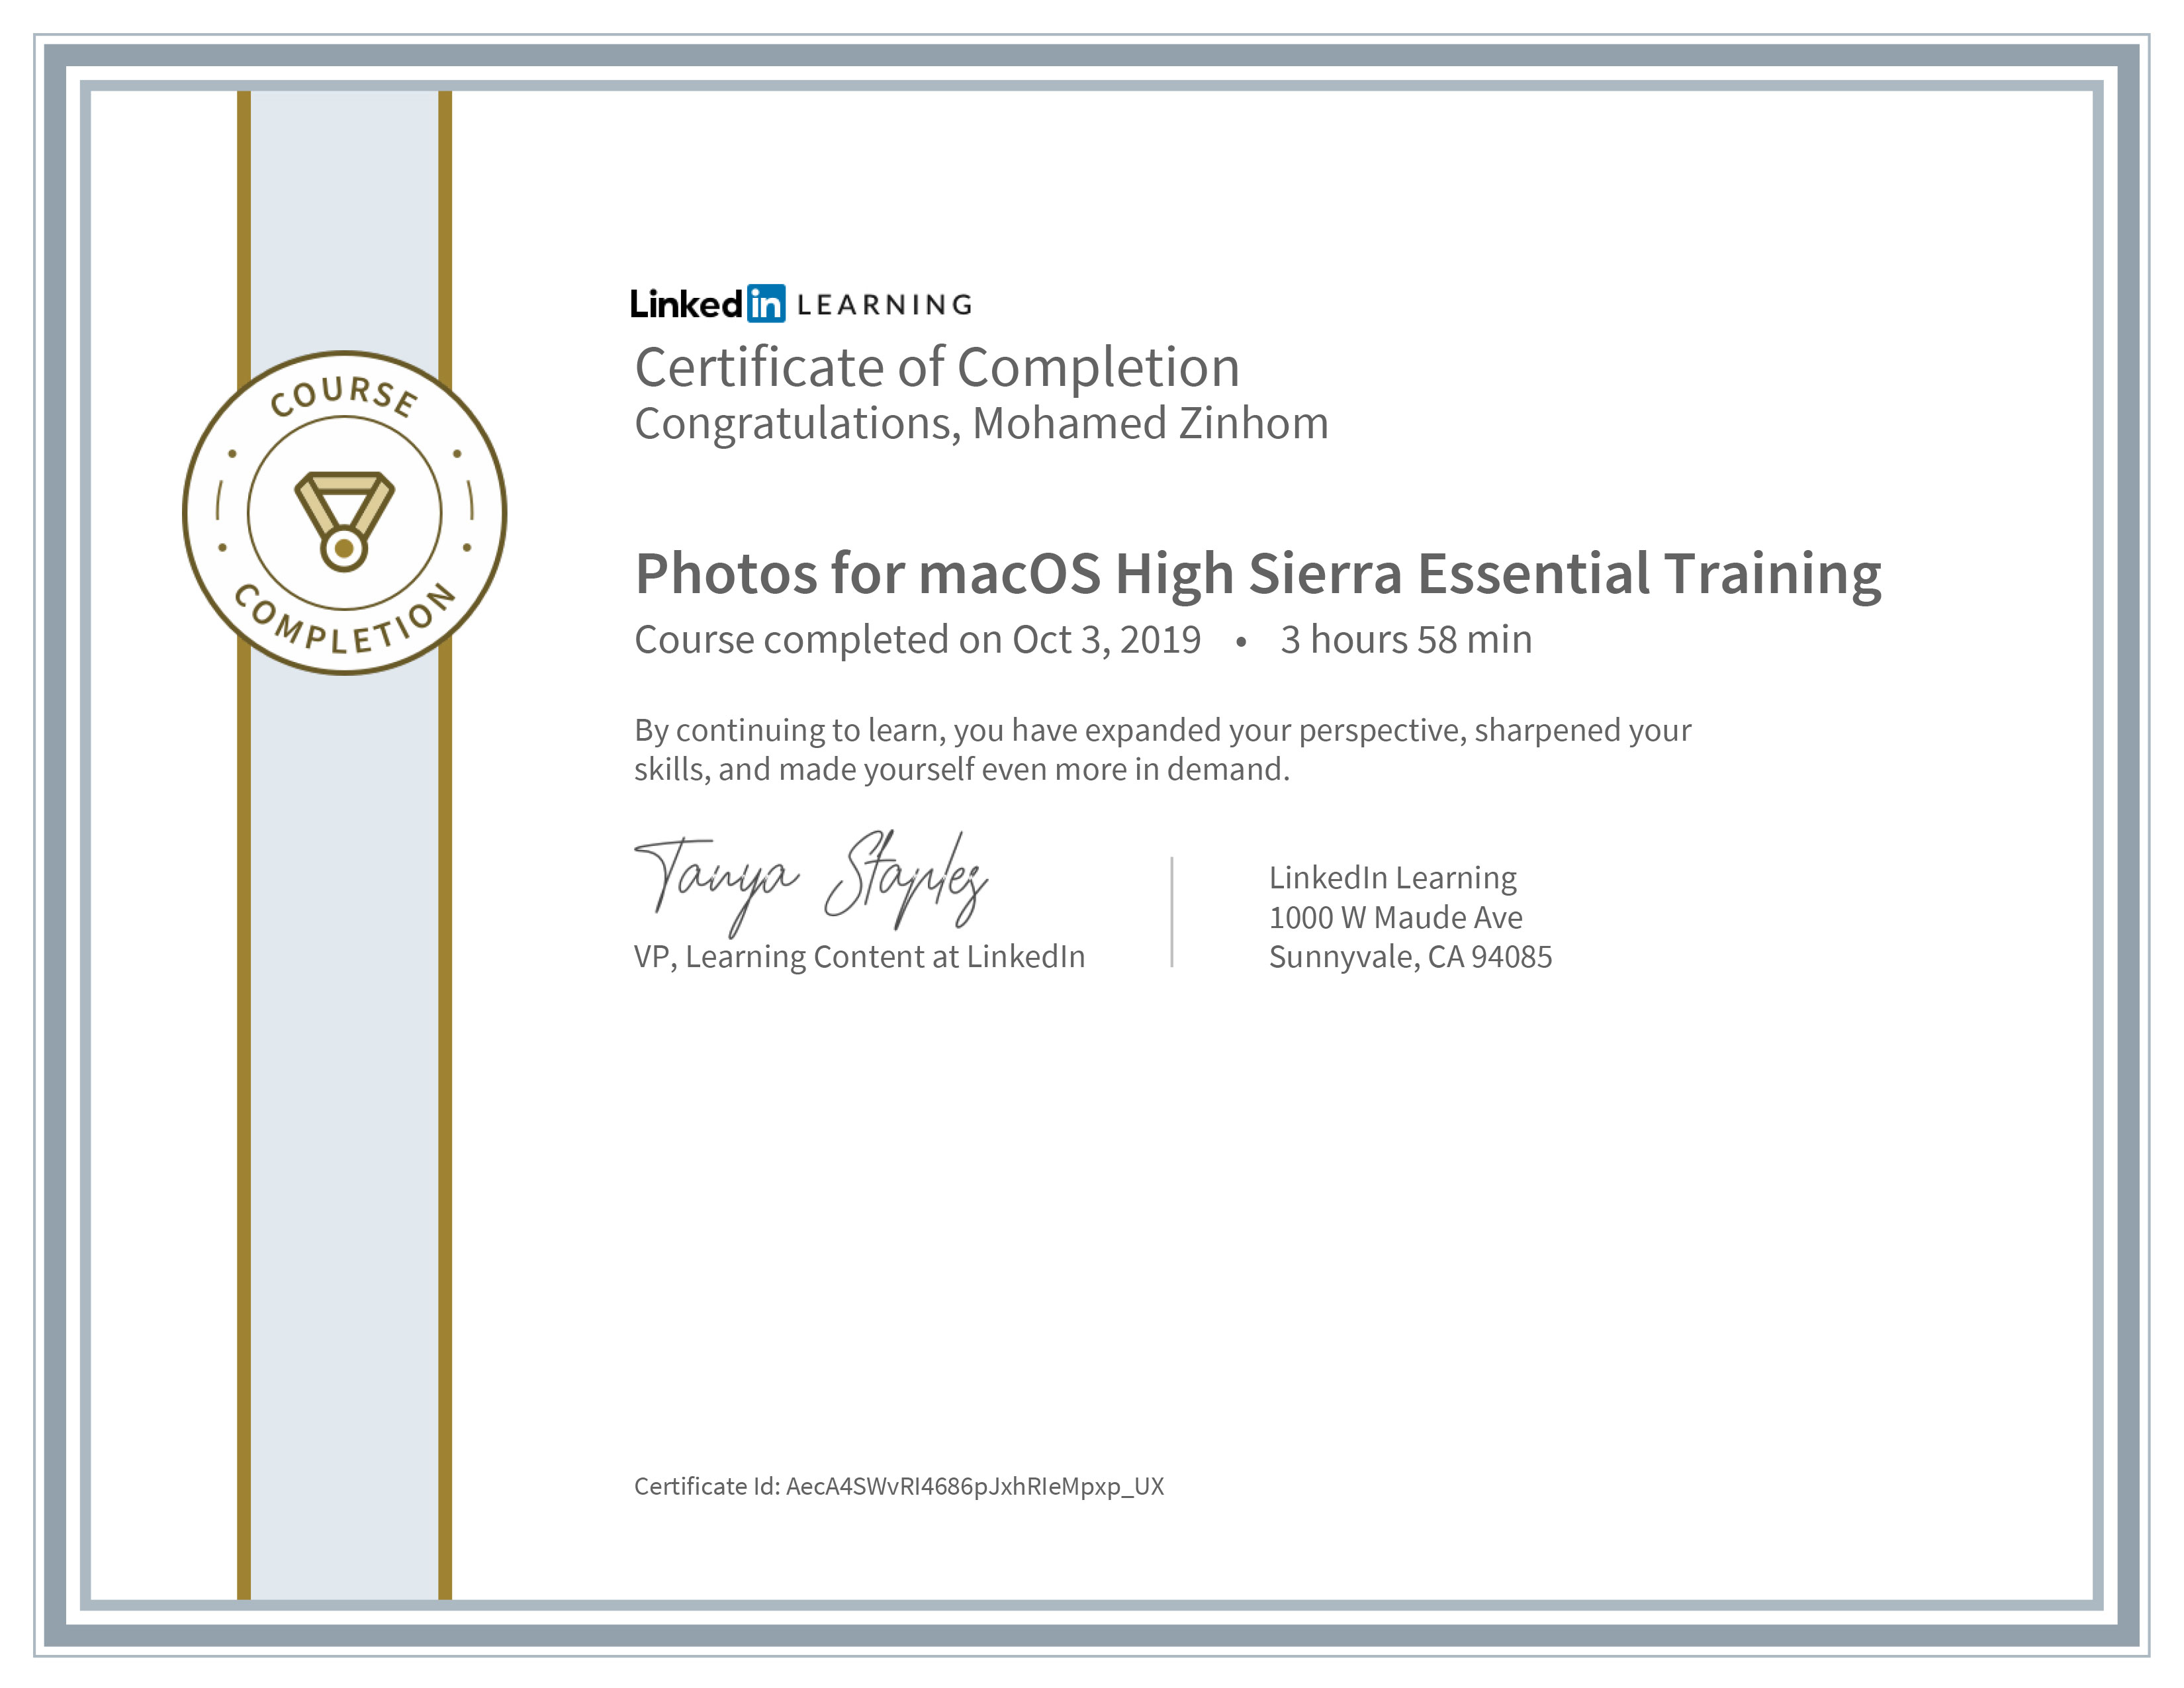 Certificate Of Completion Photos For Mac os High Sierra Essential Training